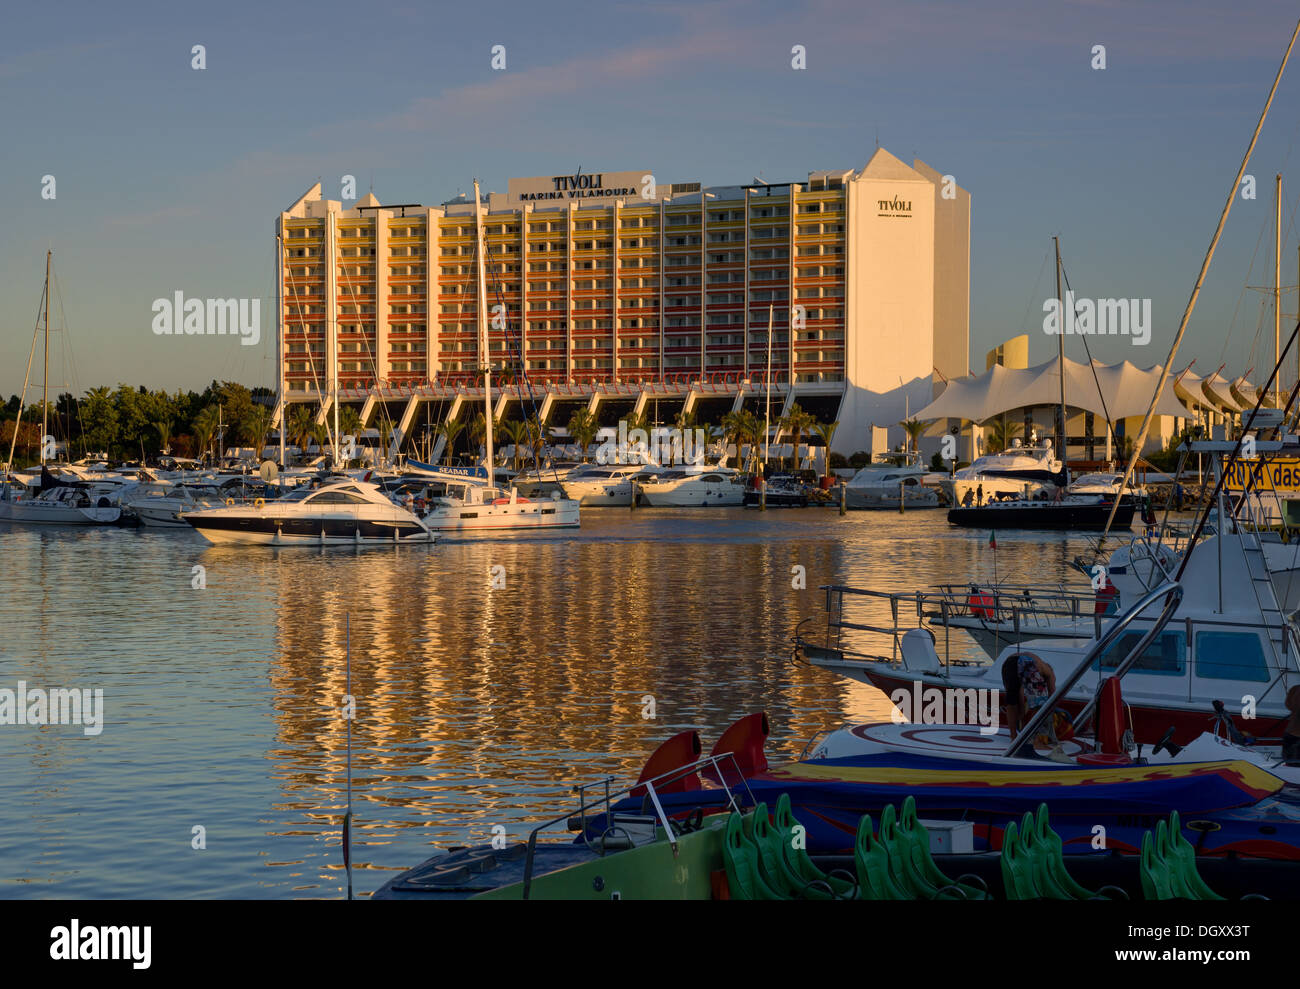 Tivoli Hotels In The Algarve Tivoli Marina Vilamoura Stock Photos And Tivoli Marina